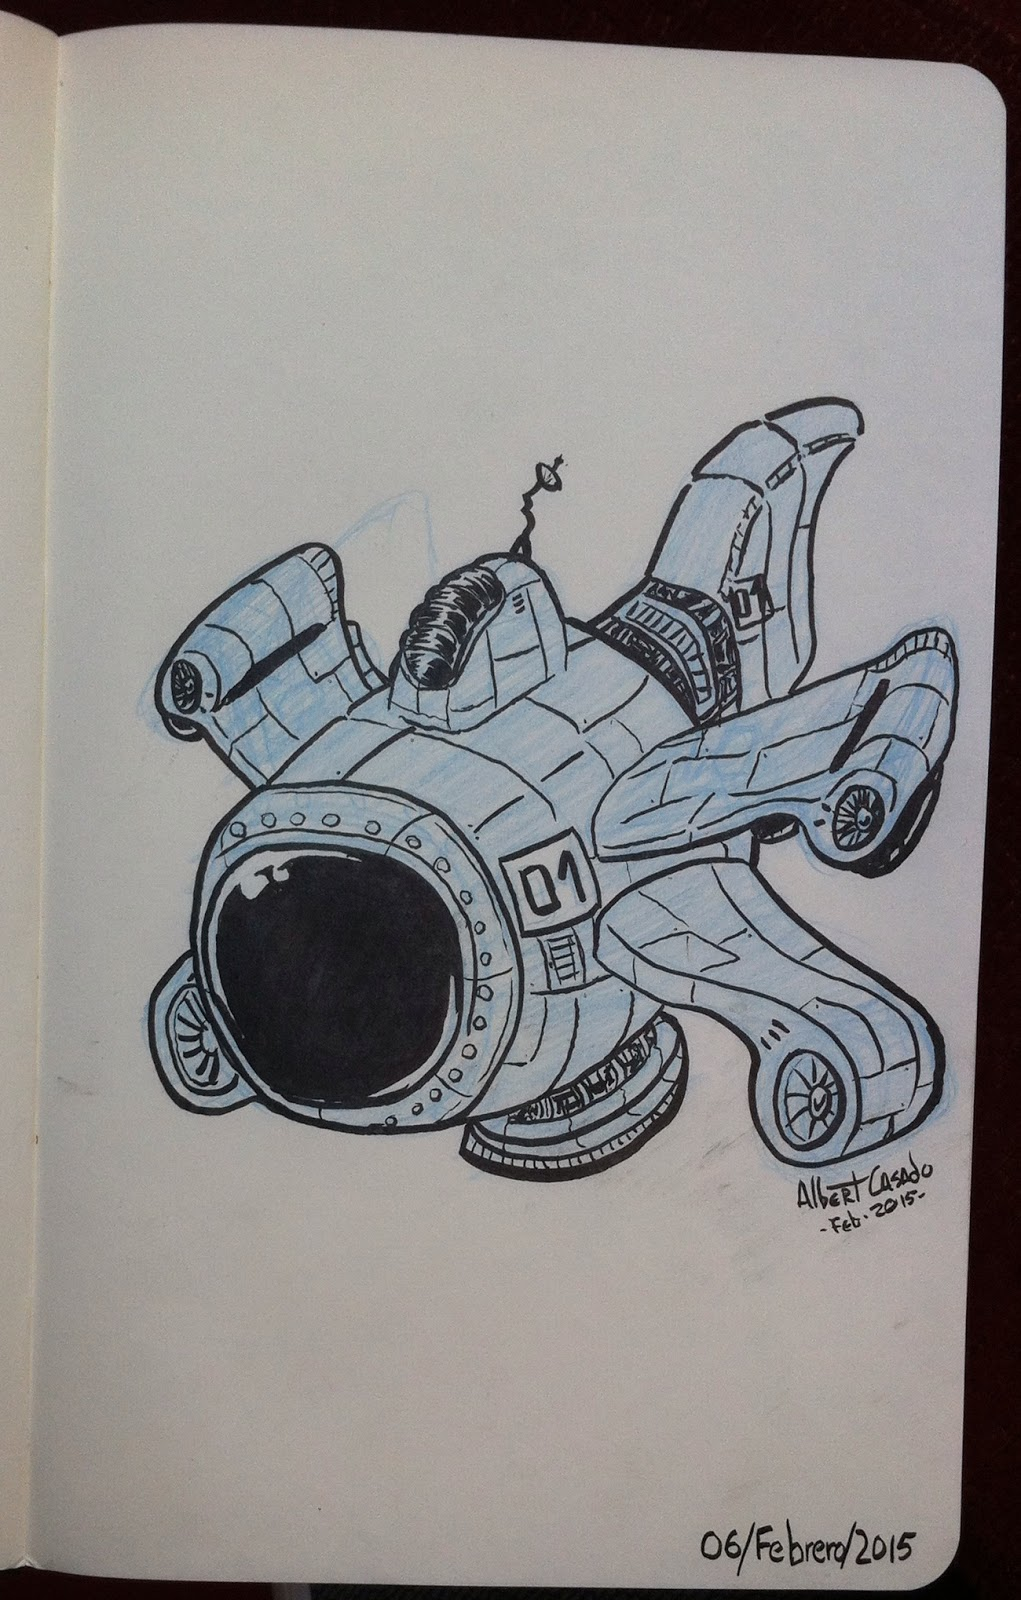 01 - Spaceship (100MechDrawings) - Albert Casado